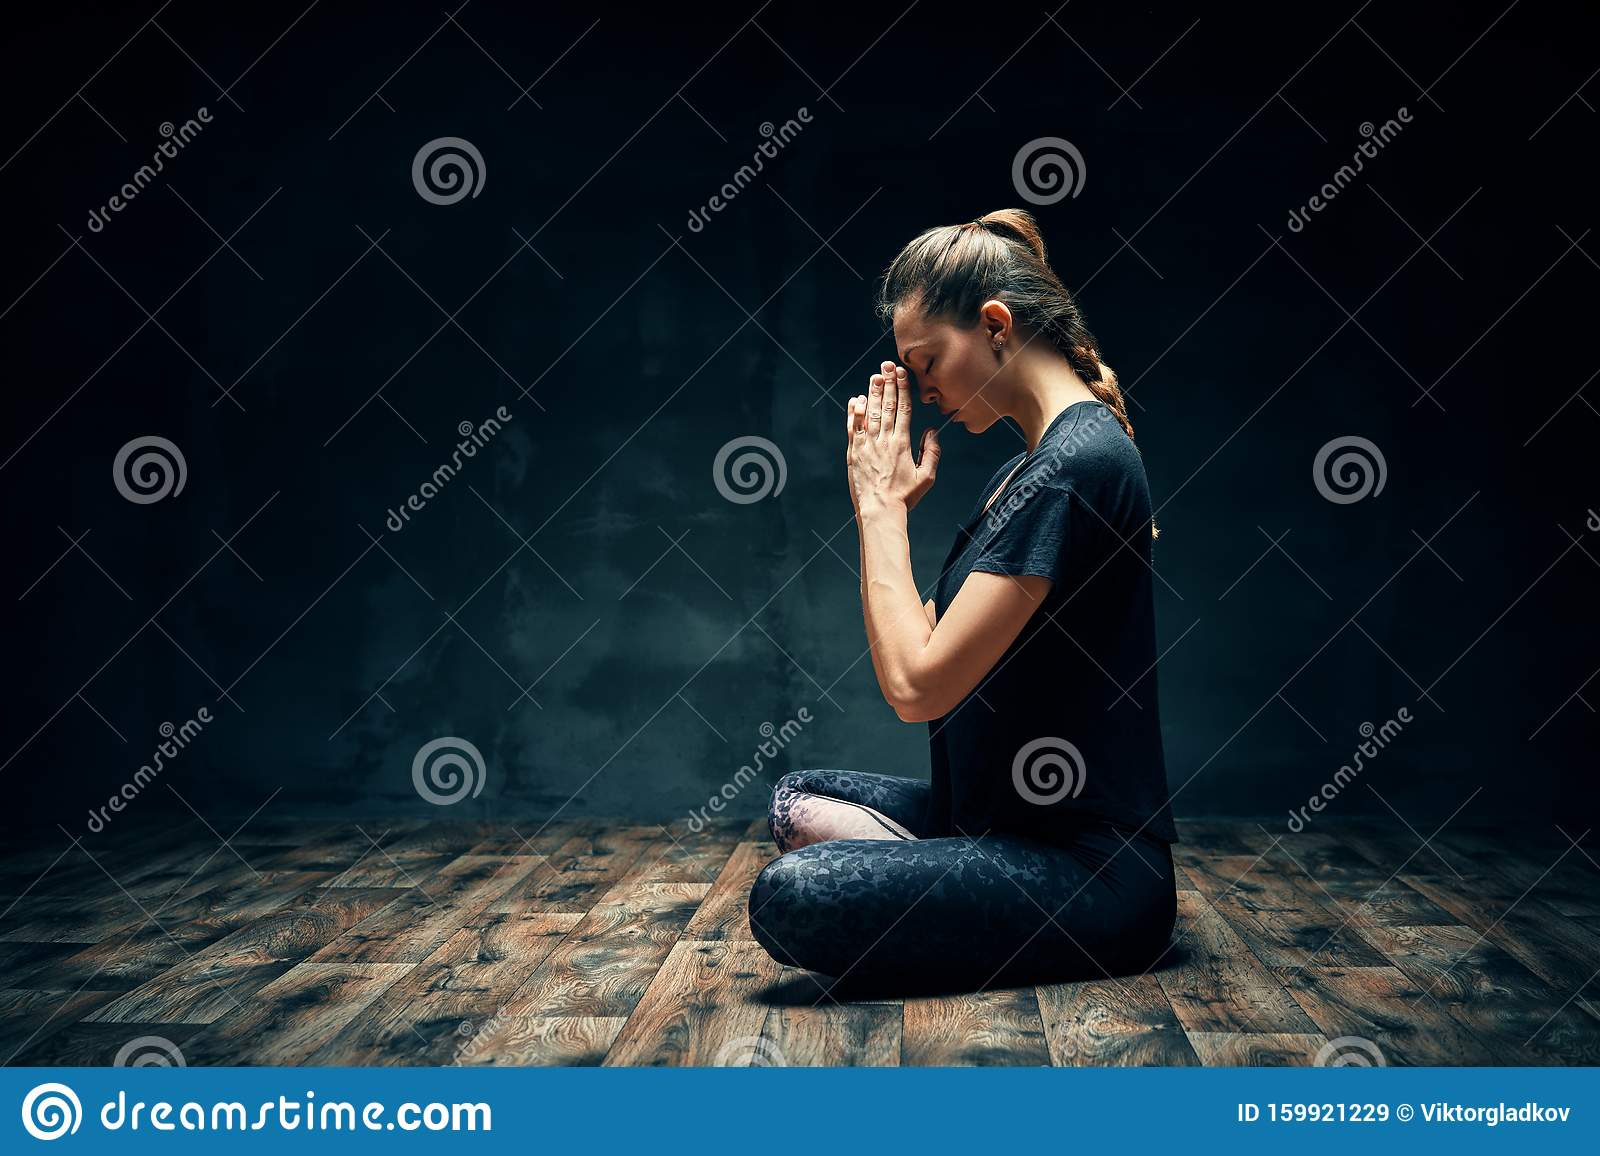 Rear View of Meditative Young Woman Sitting in Lotus Pose